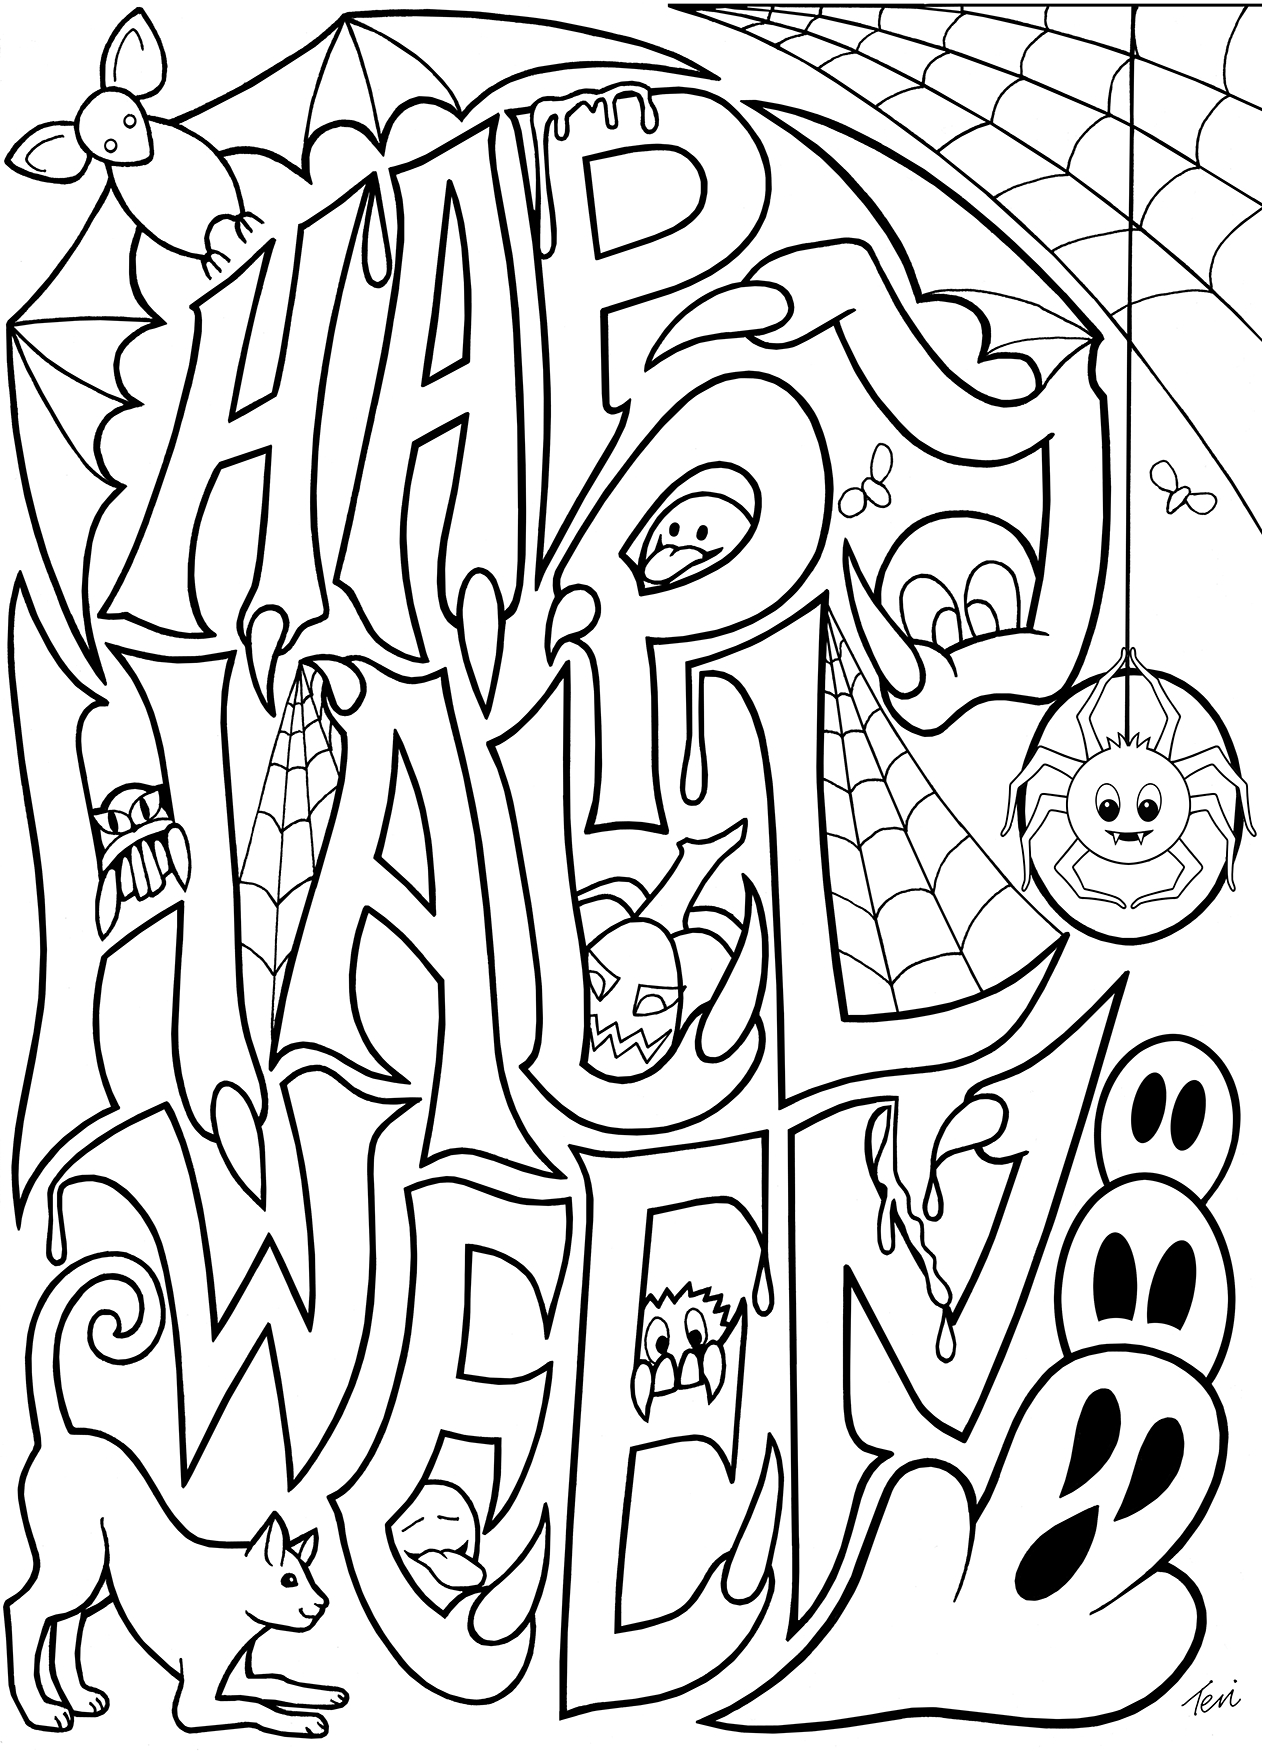 free halloween printable coloring pages coloring ville coloring free halloween pages printable